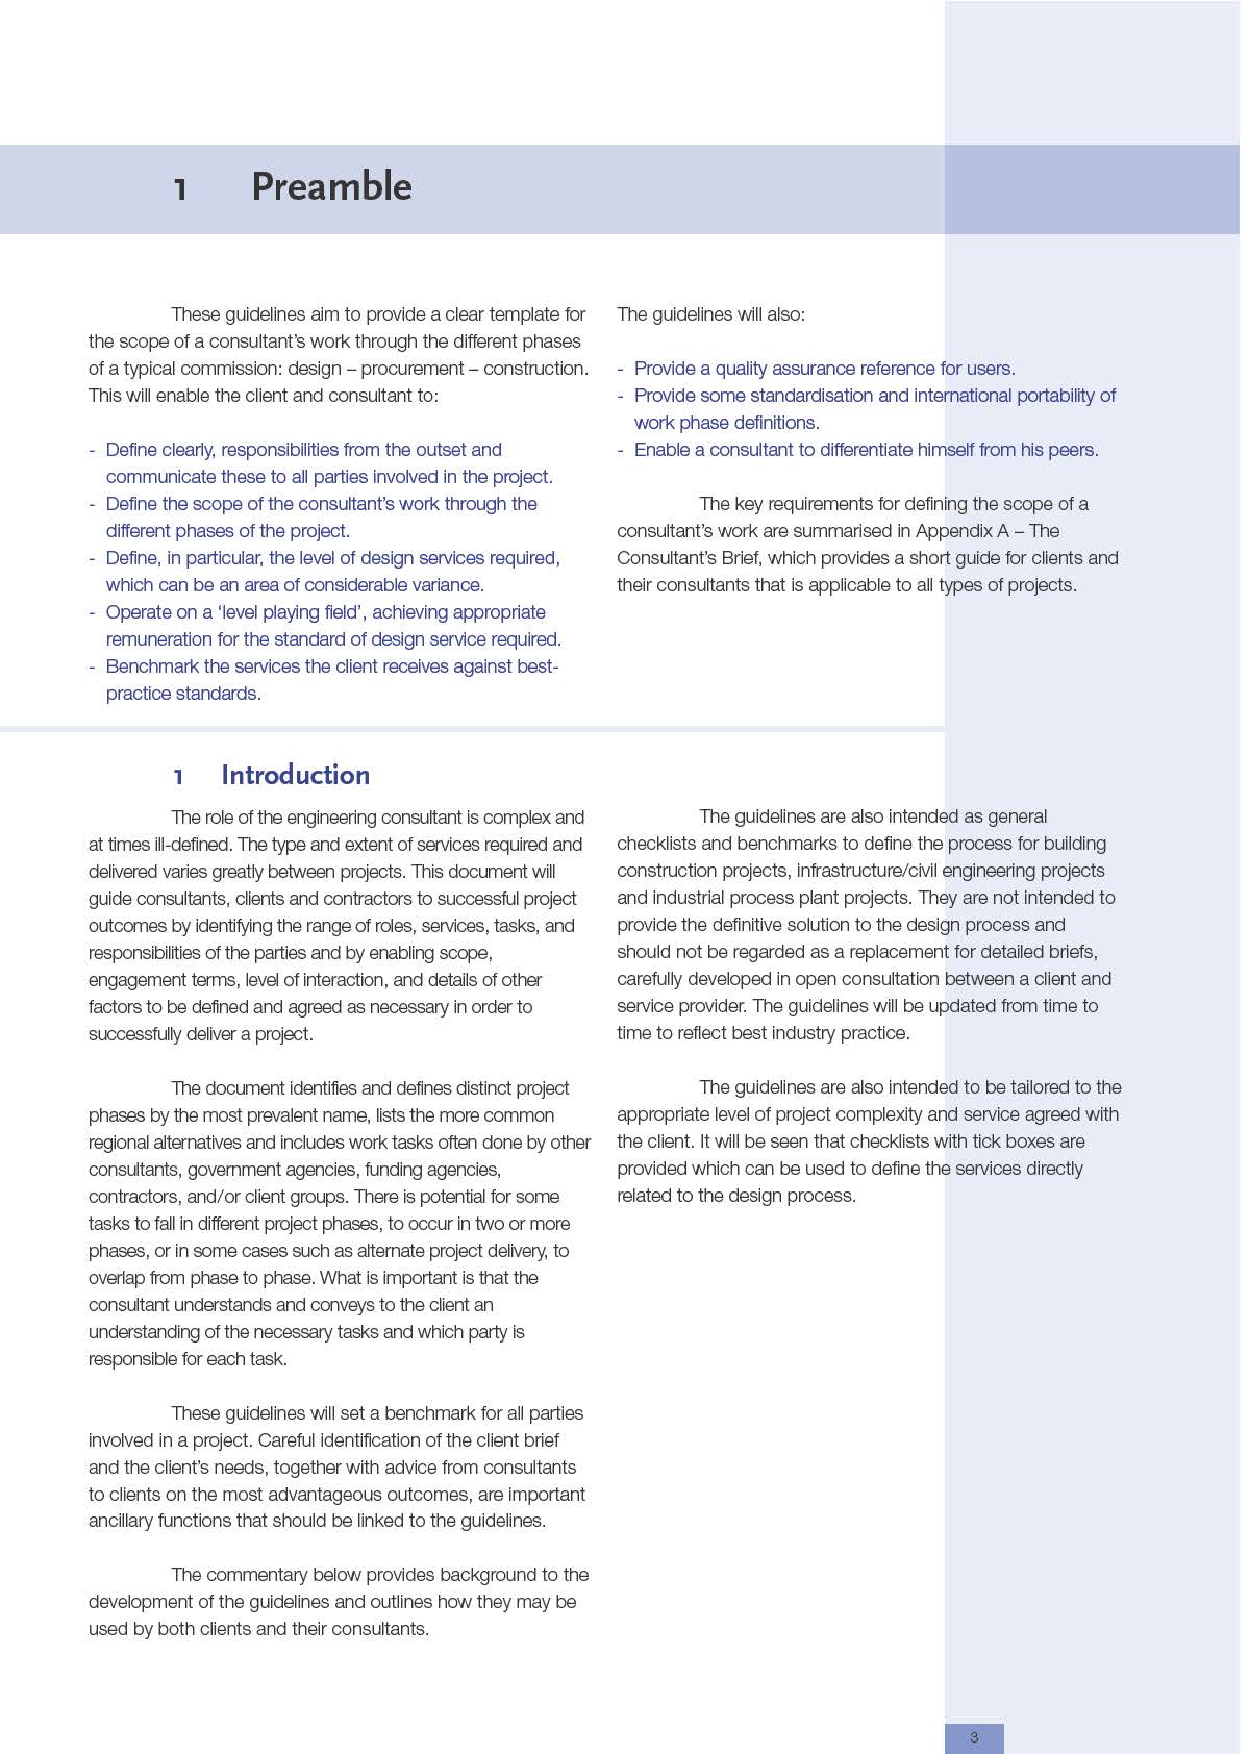 Definition of Services Guidelines (Building Construction